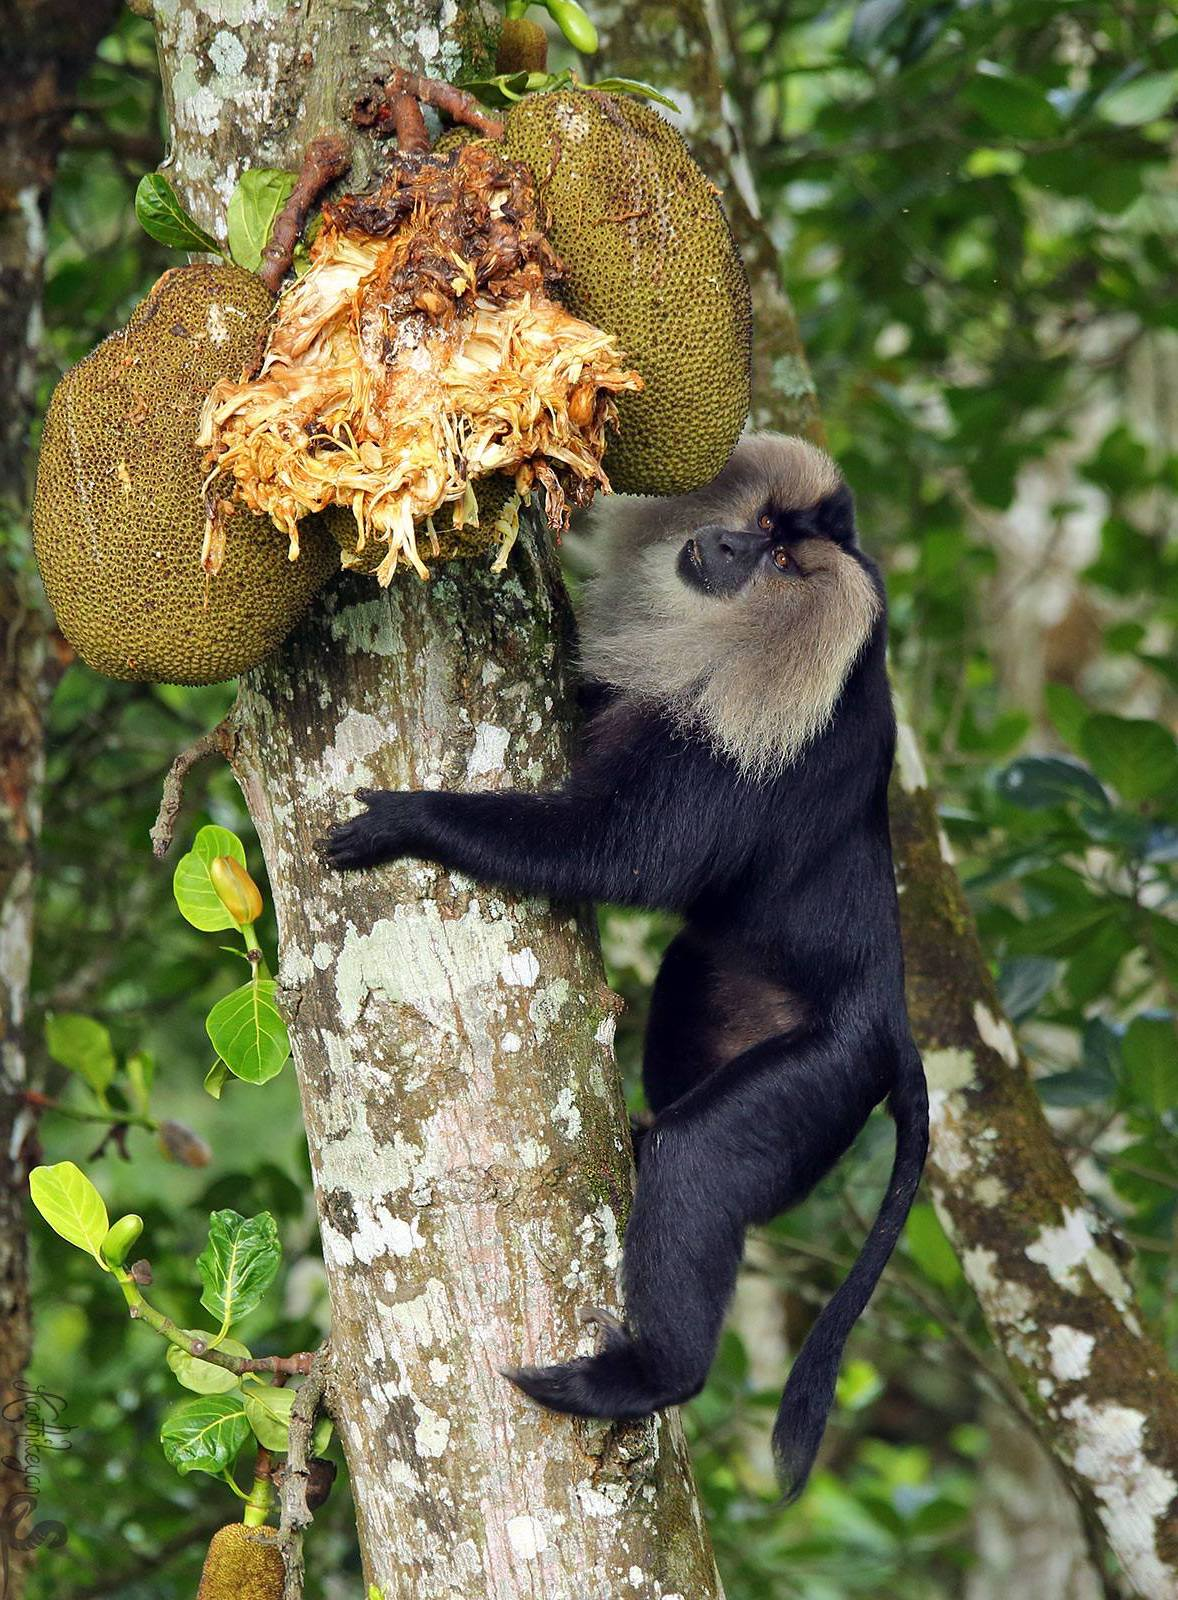 Jackfruit is one of the lion-tailed macaque's favourite foods. These monkeys may also supplement their frugivorous diet with insects and small vertebrates. Photo: Karthikeyan Shanmugasundaram